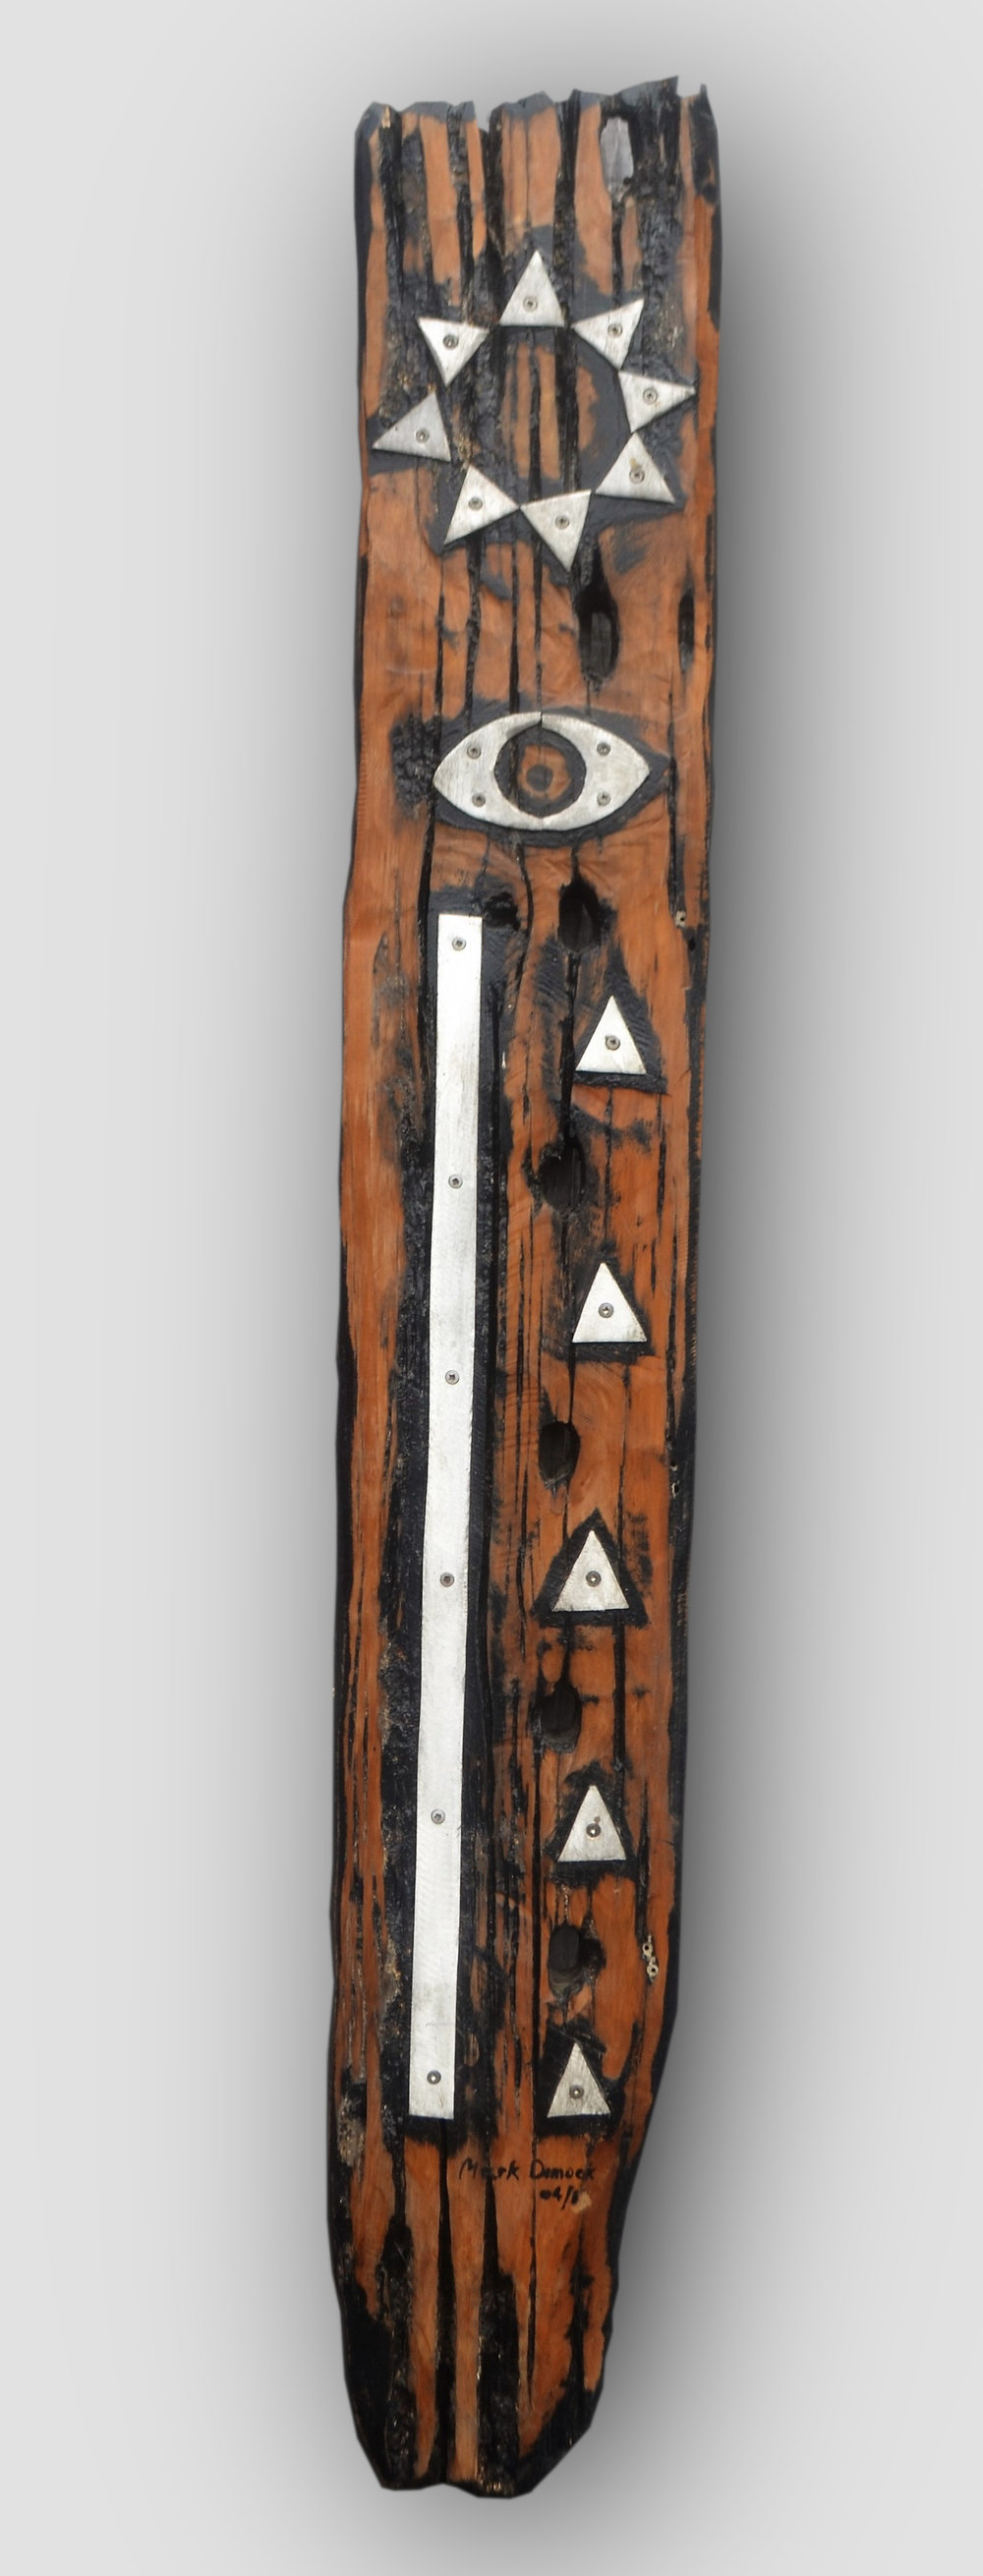 Eye Rune (click to extend)  Mark Dimock, steel on wood, hanging outdoor wall sculpture, 250mm x 1430mm  $995.00